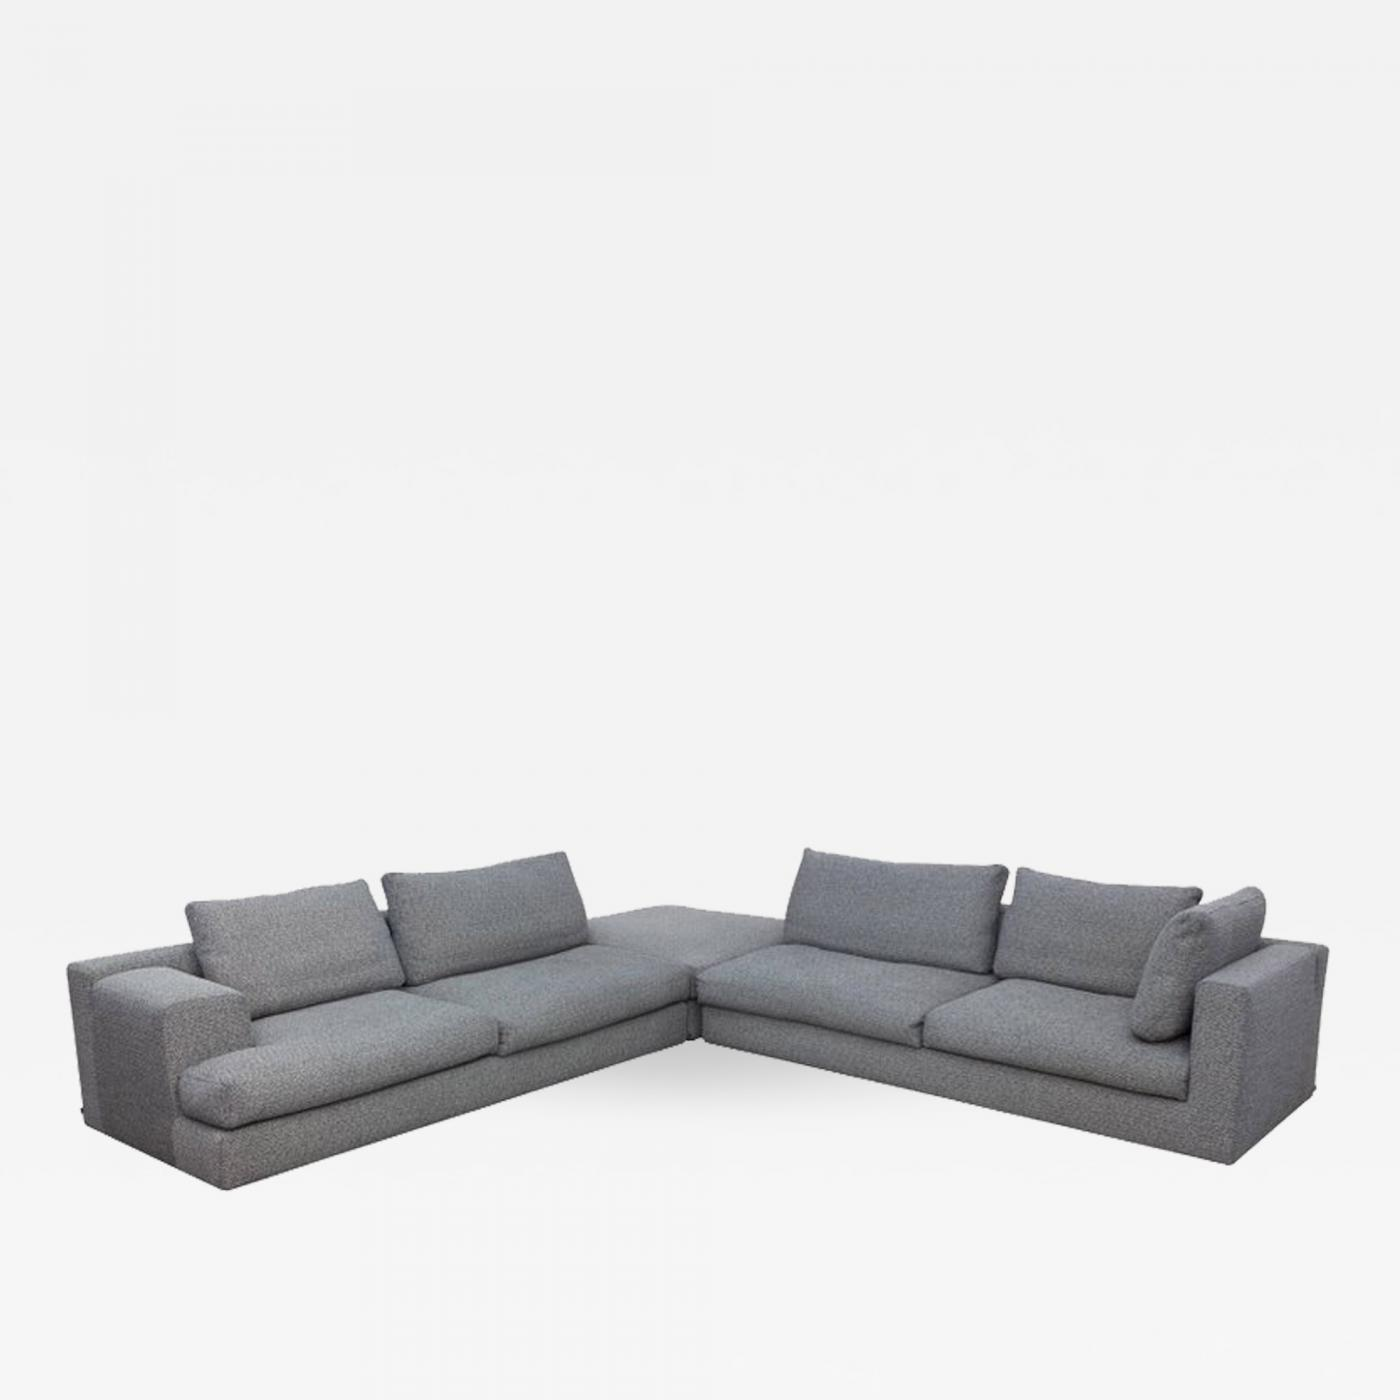 Piero Lissoni Modular Sofa Piero Lissoni Cassina Miloe Modular Sofa By Piero Lissoni